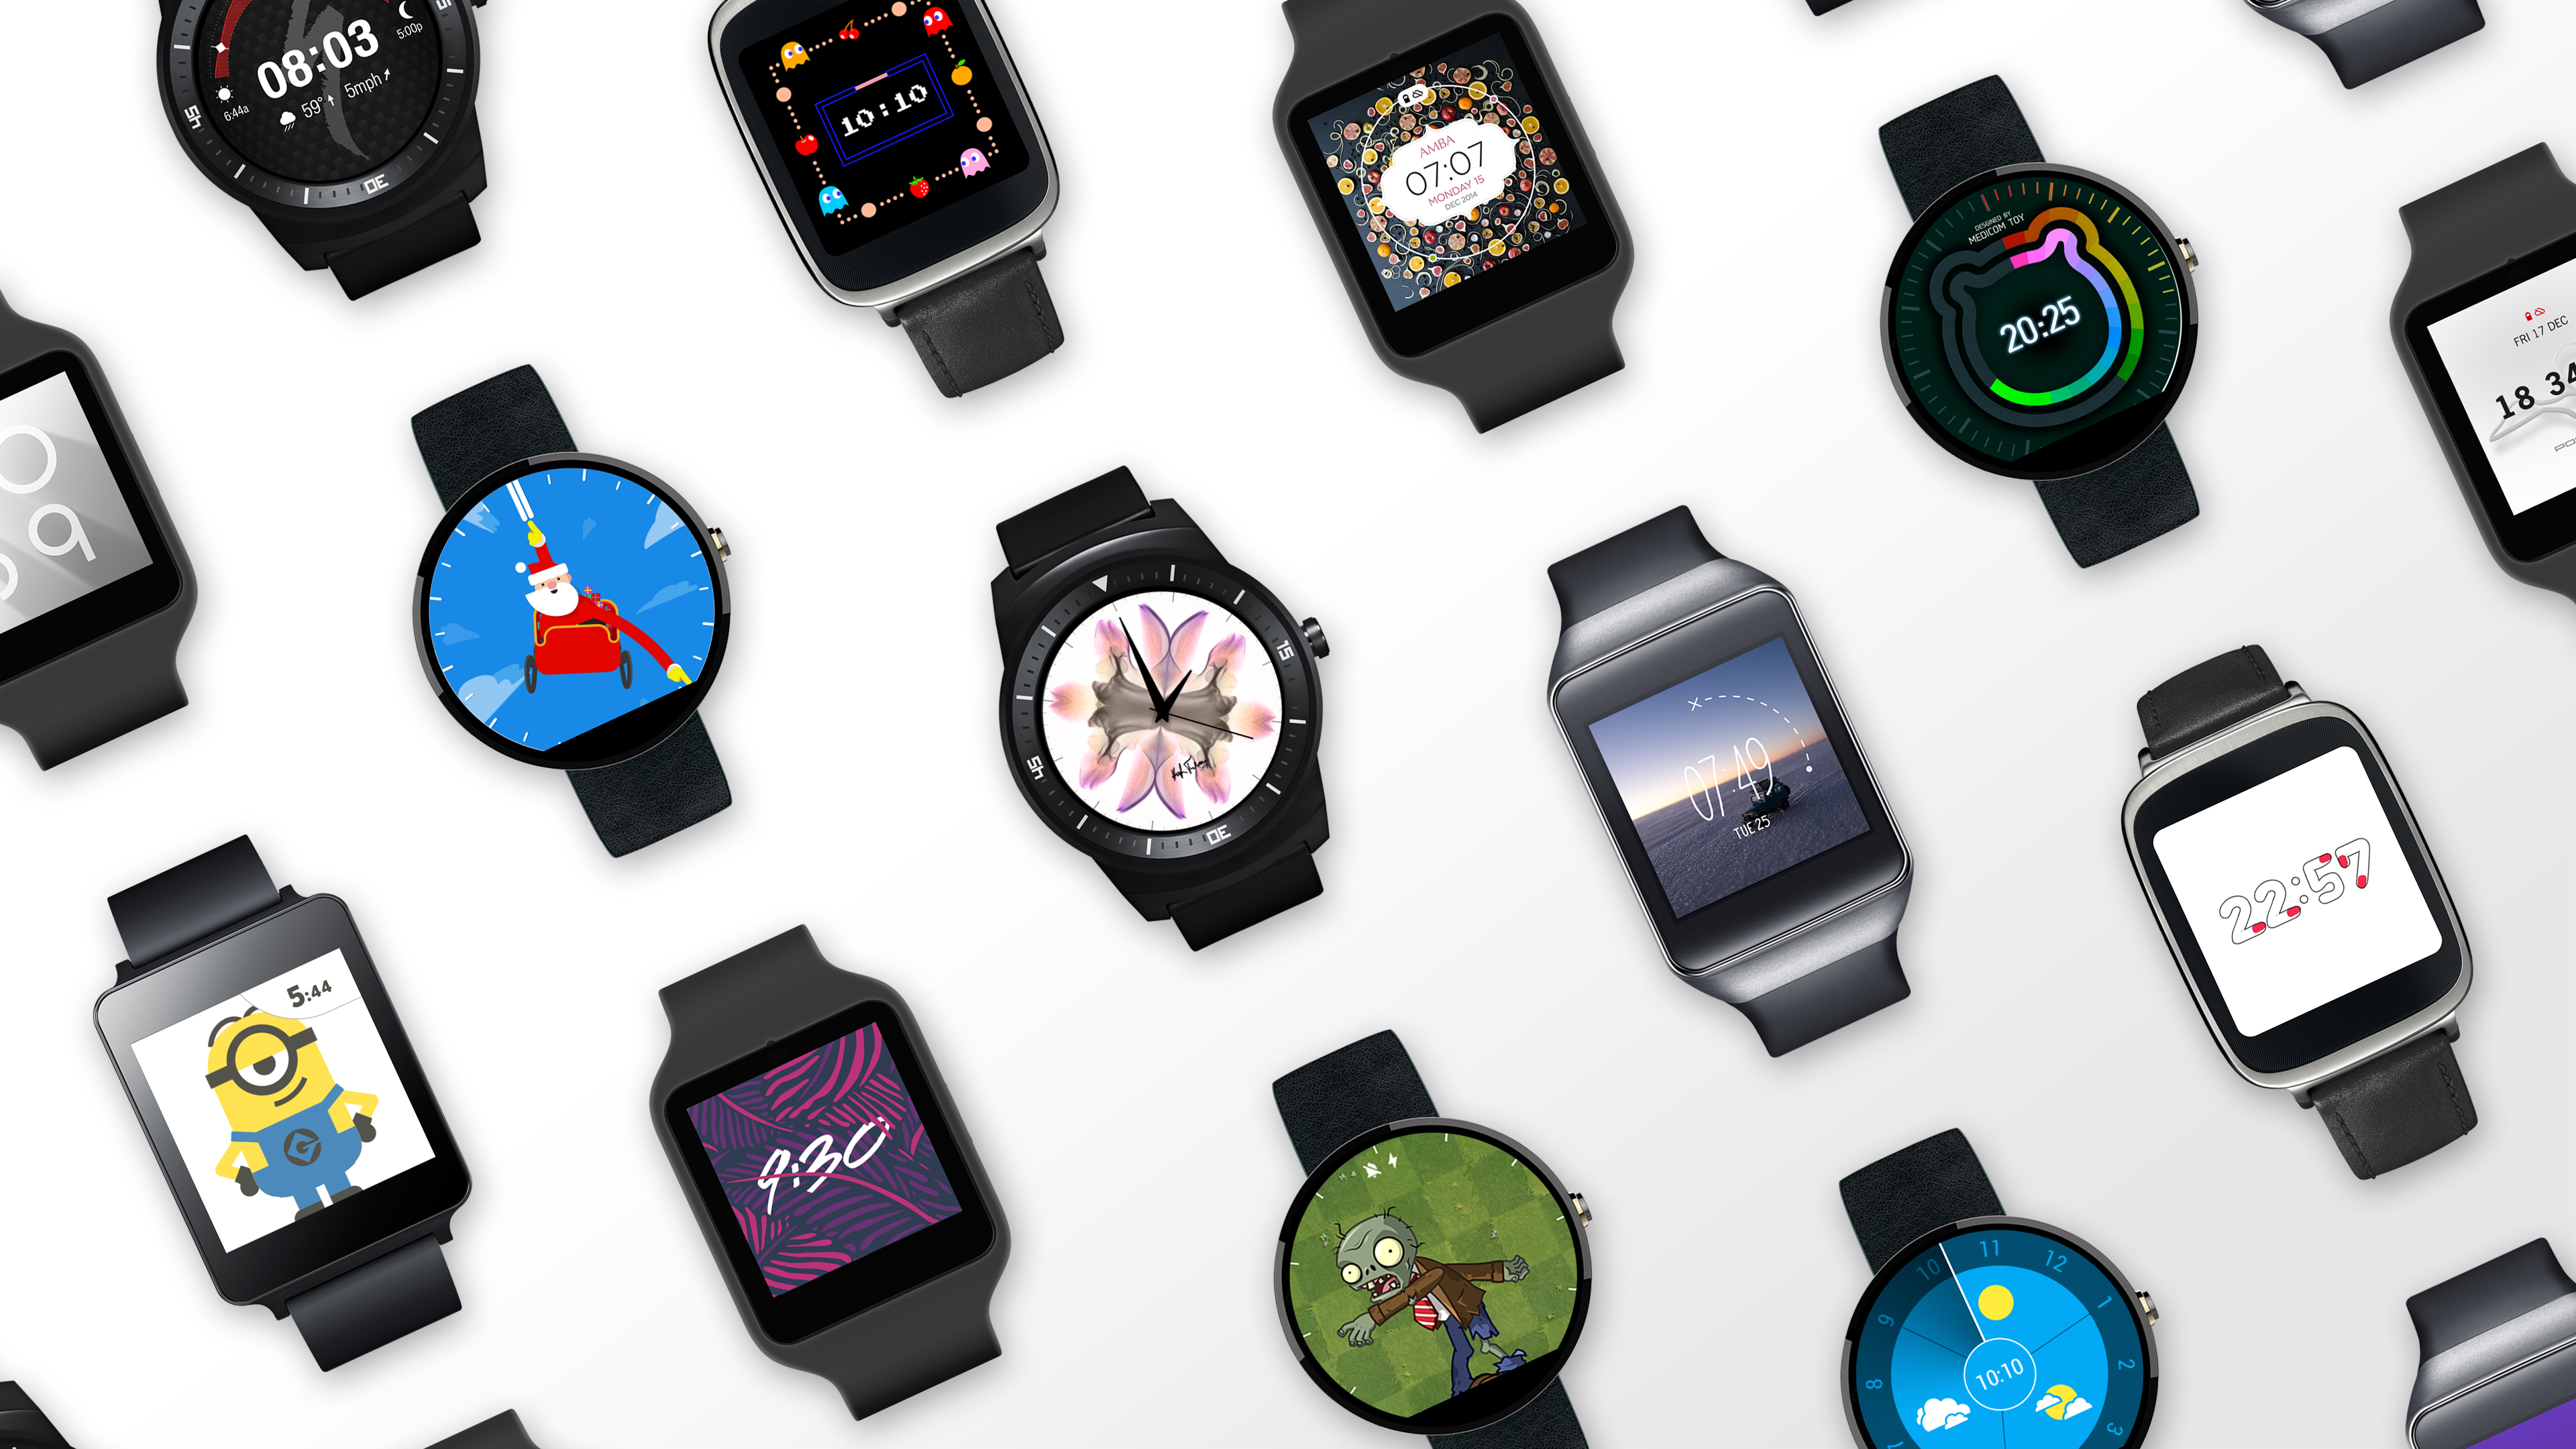 Dozens of custom Android Wear watch faces will soon be available for download on the Google Play store.